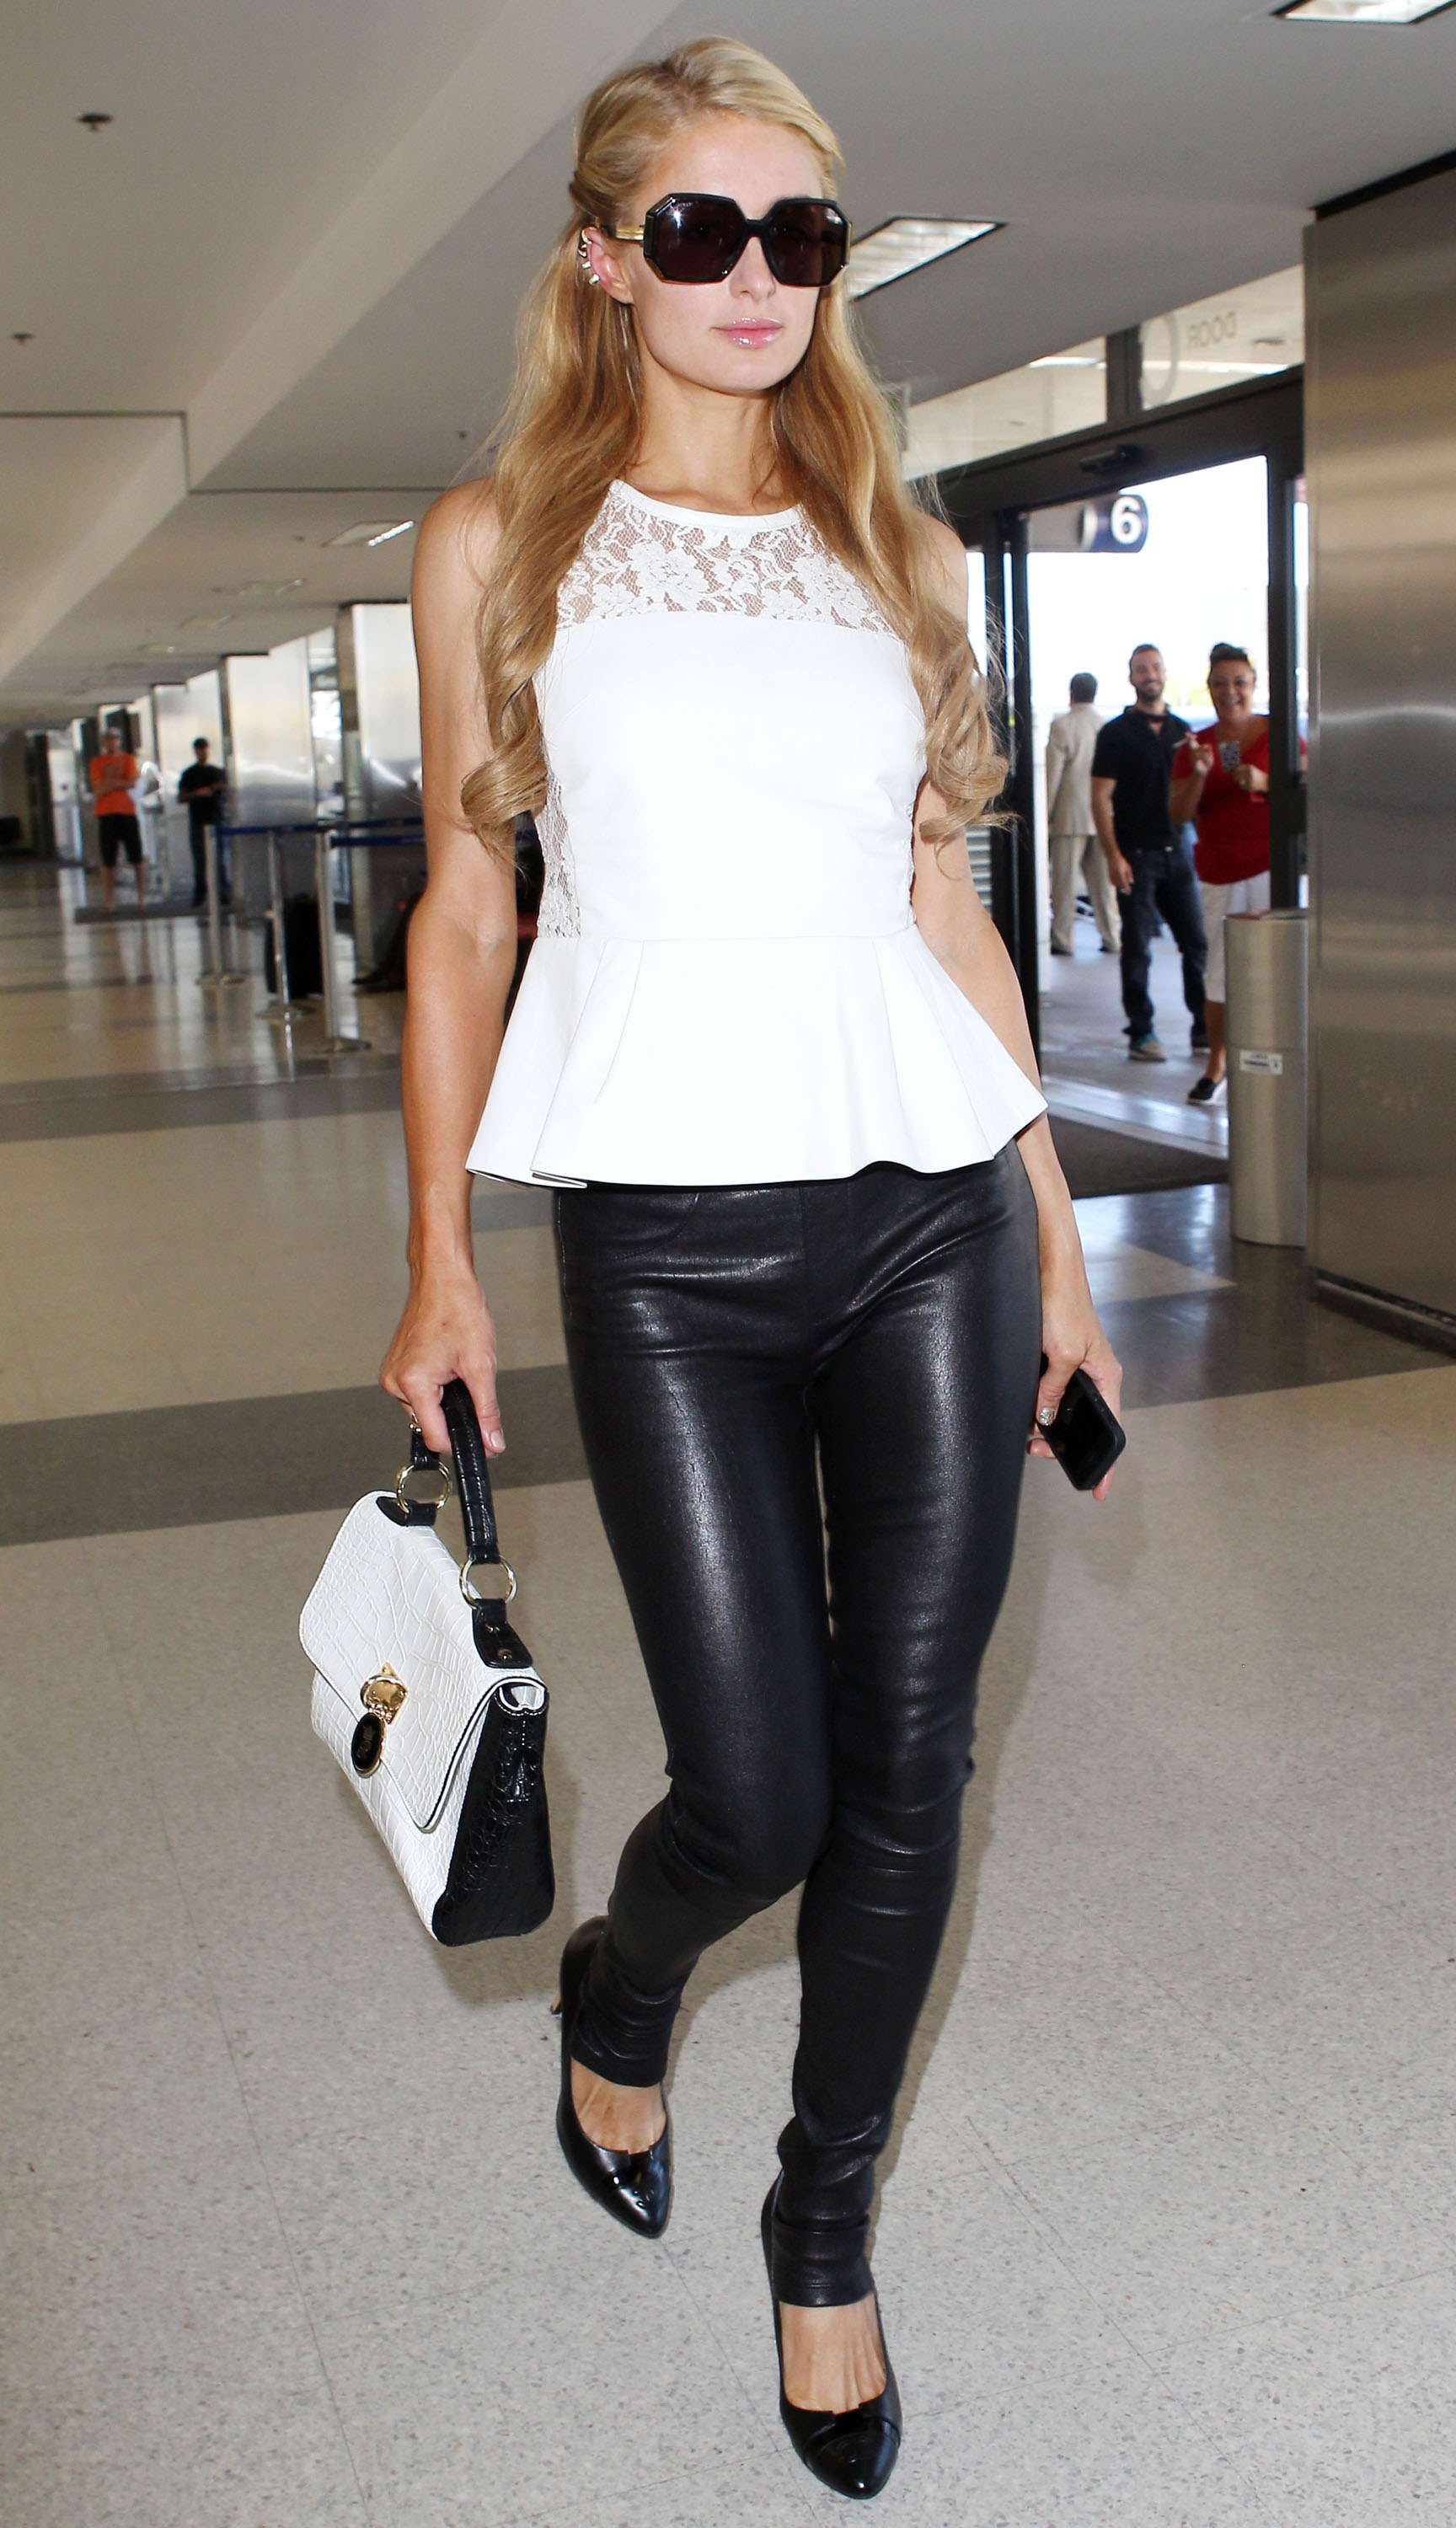 Paris Hilton In Leather Pants 14 Sawfirst